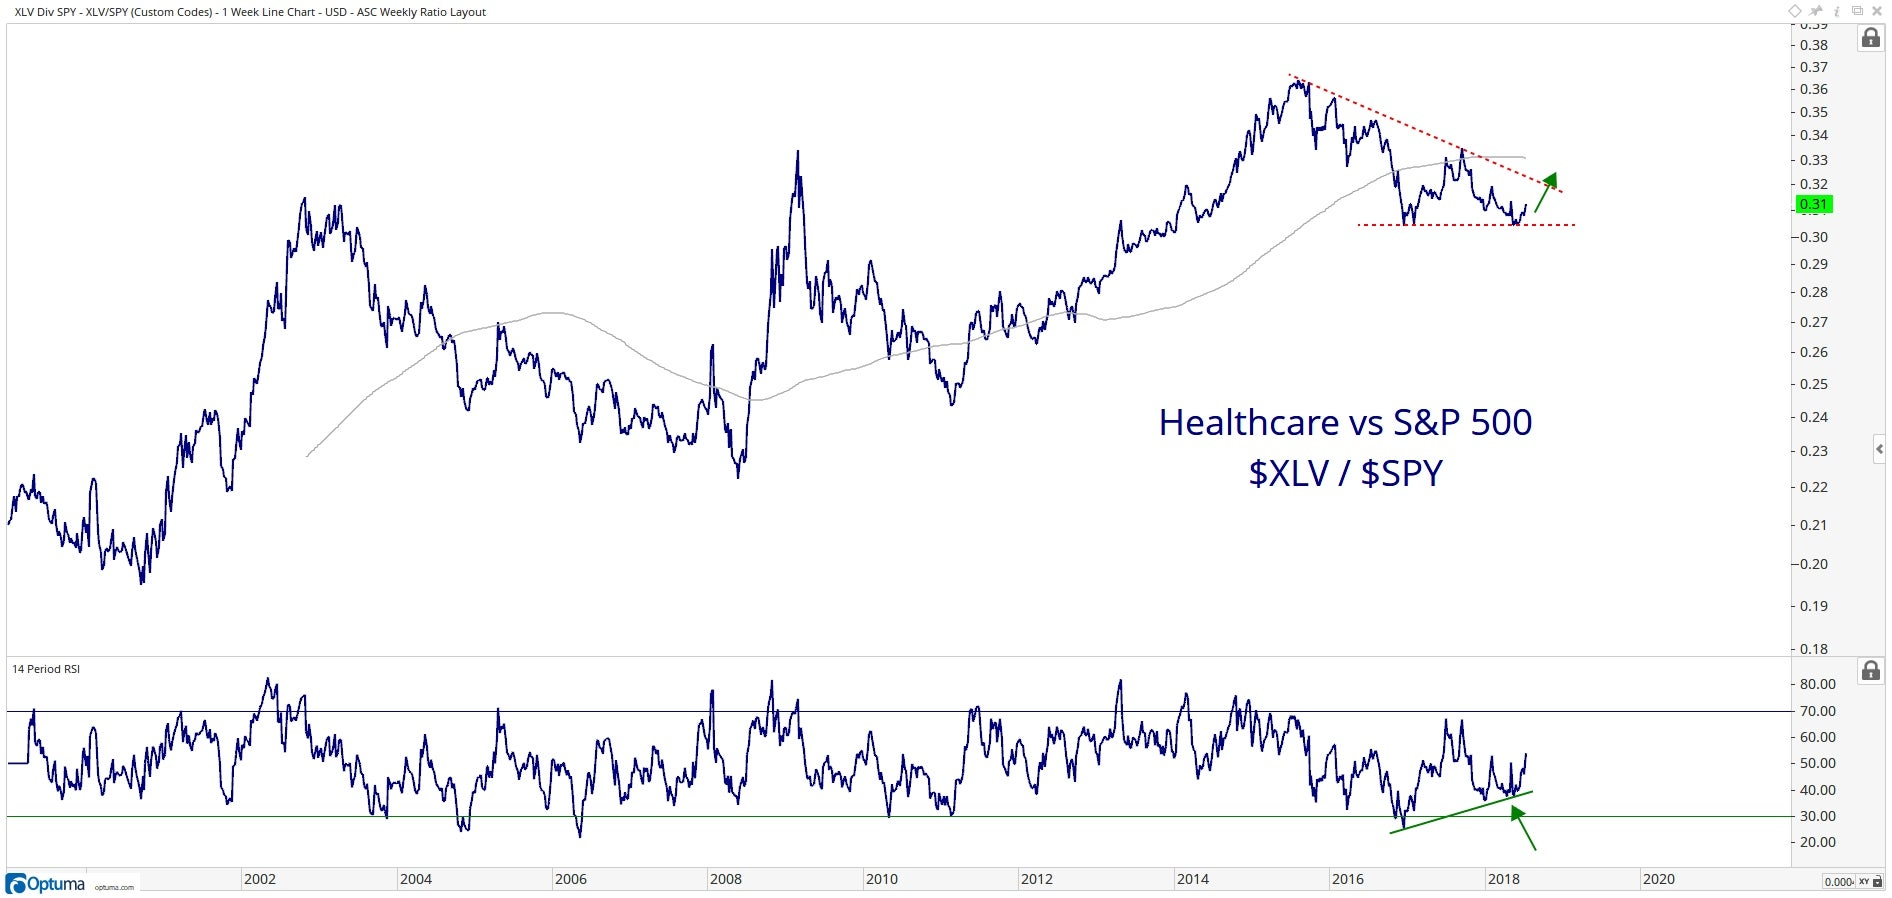 Chart showing performance of Health Care Select Sector SPDR ETF (XLV) vs. SPDR S&P 500 ETF (SPY)